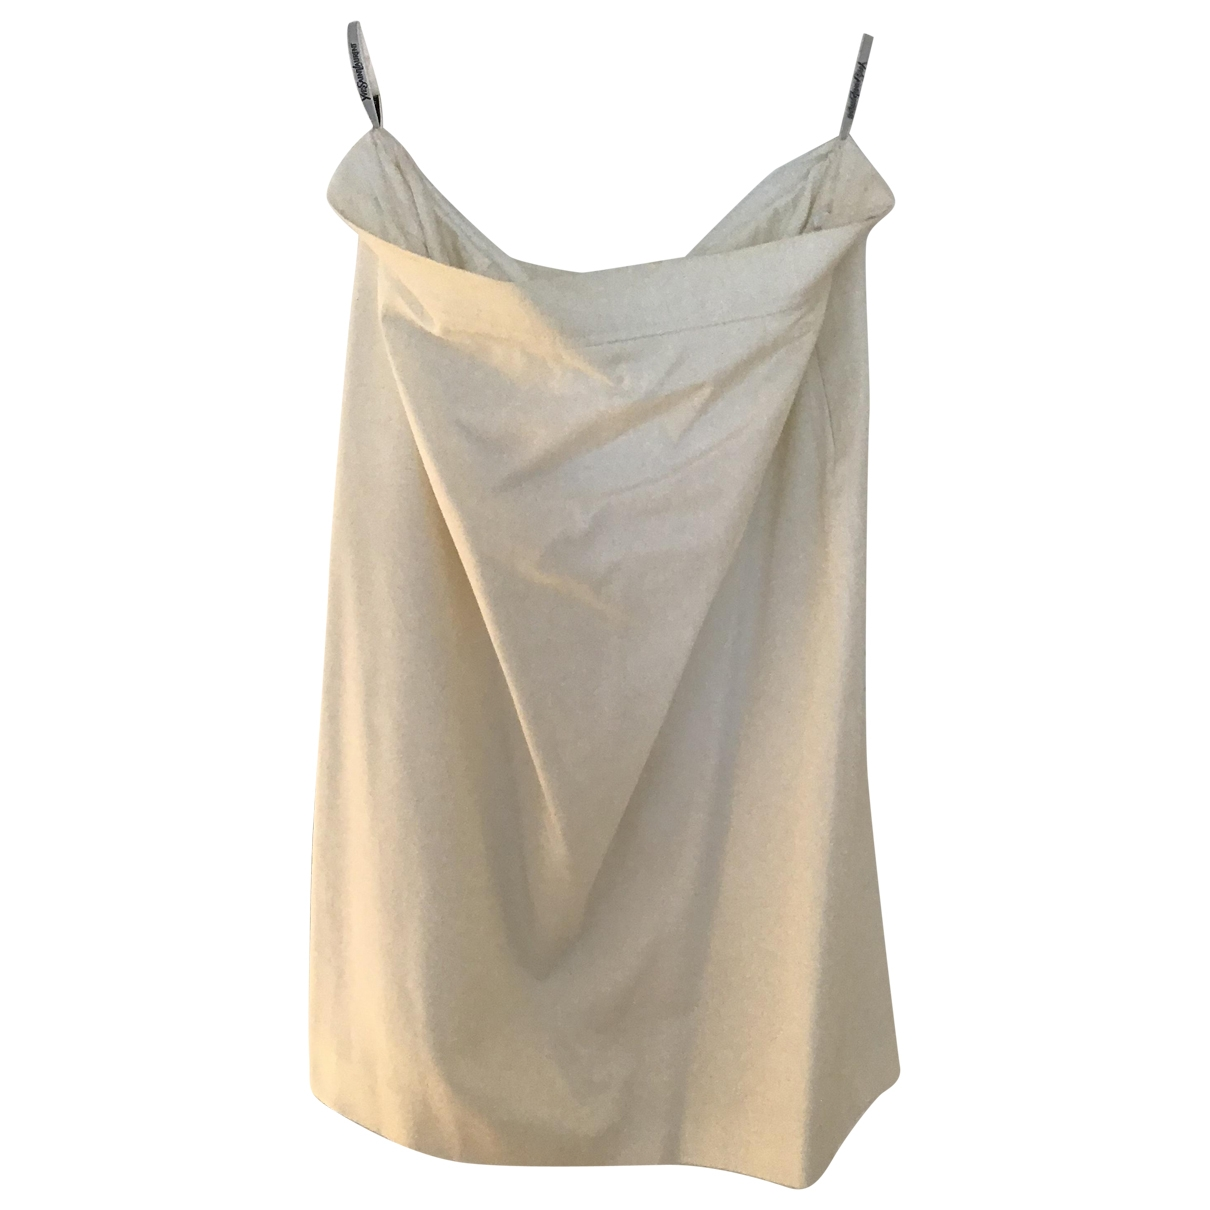 Yves Saint Laurent \N White Cotton skirt for Women 40 FR